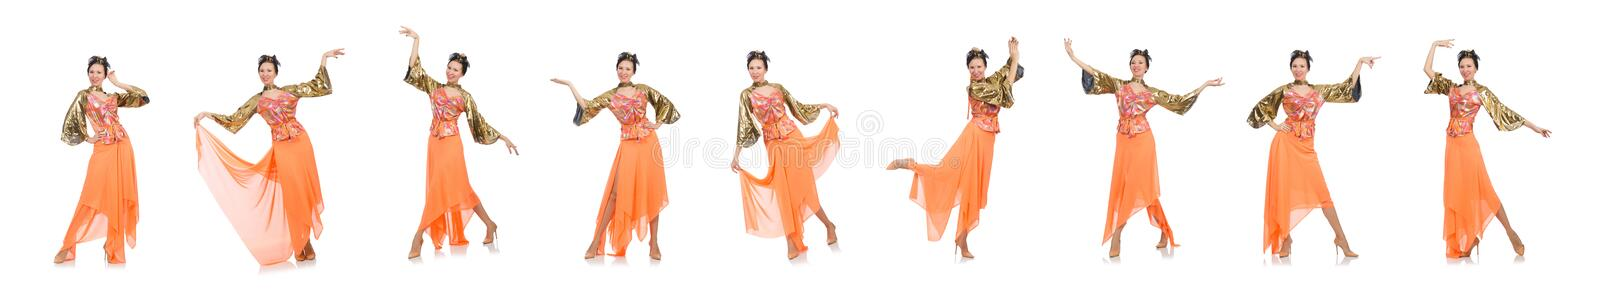 Woman in orange dress isolated on white royalty free stock photos